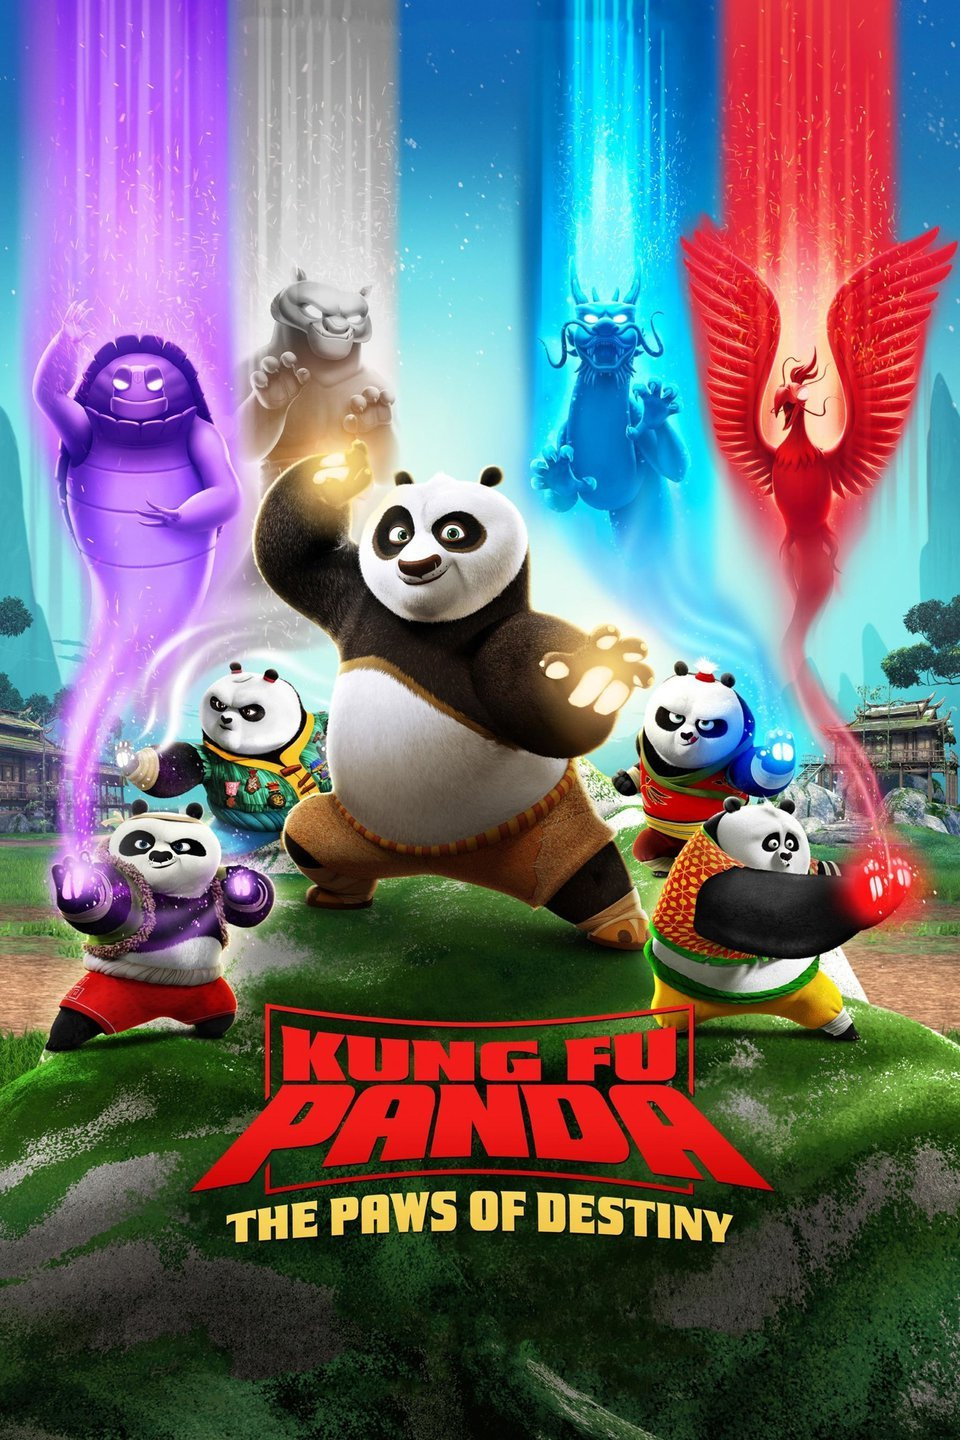 Kung Fu Panda The Paws of Destiny Season 1 Full Download Complete HD 720p